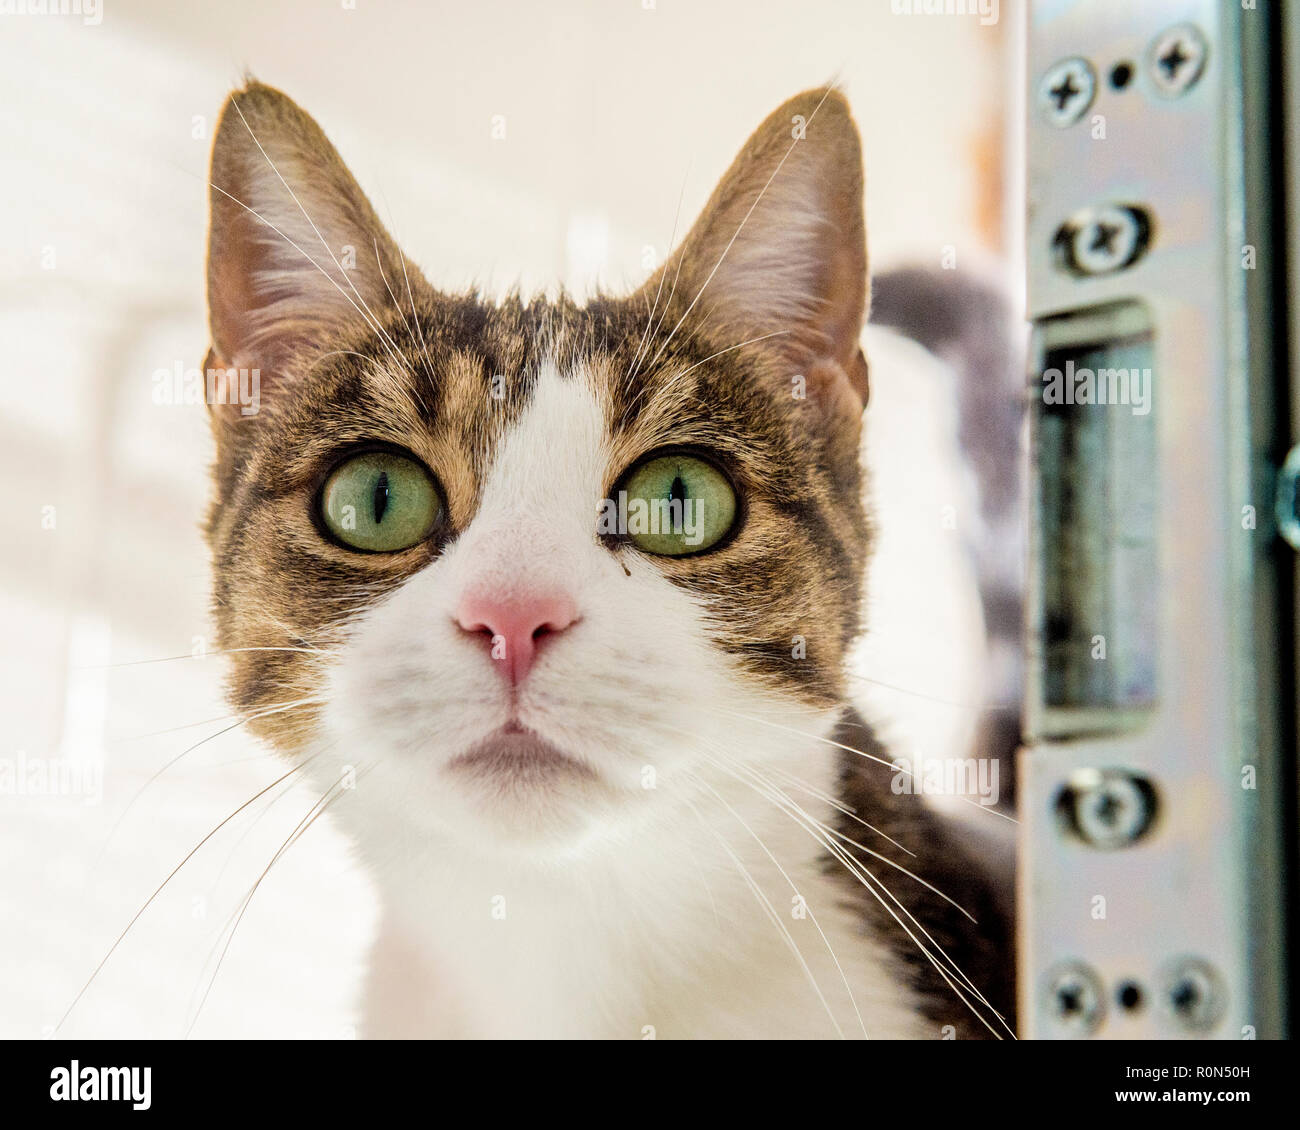 tabby and white cat - Stock Image